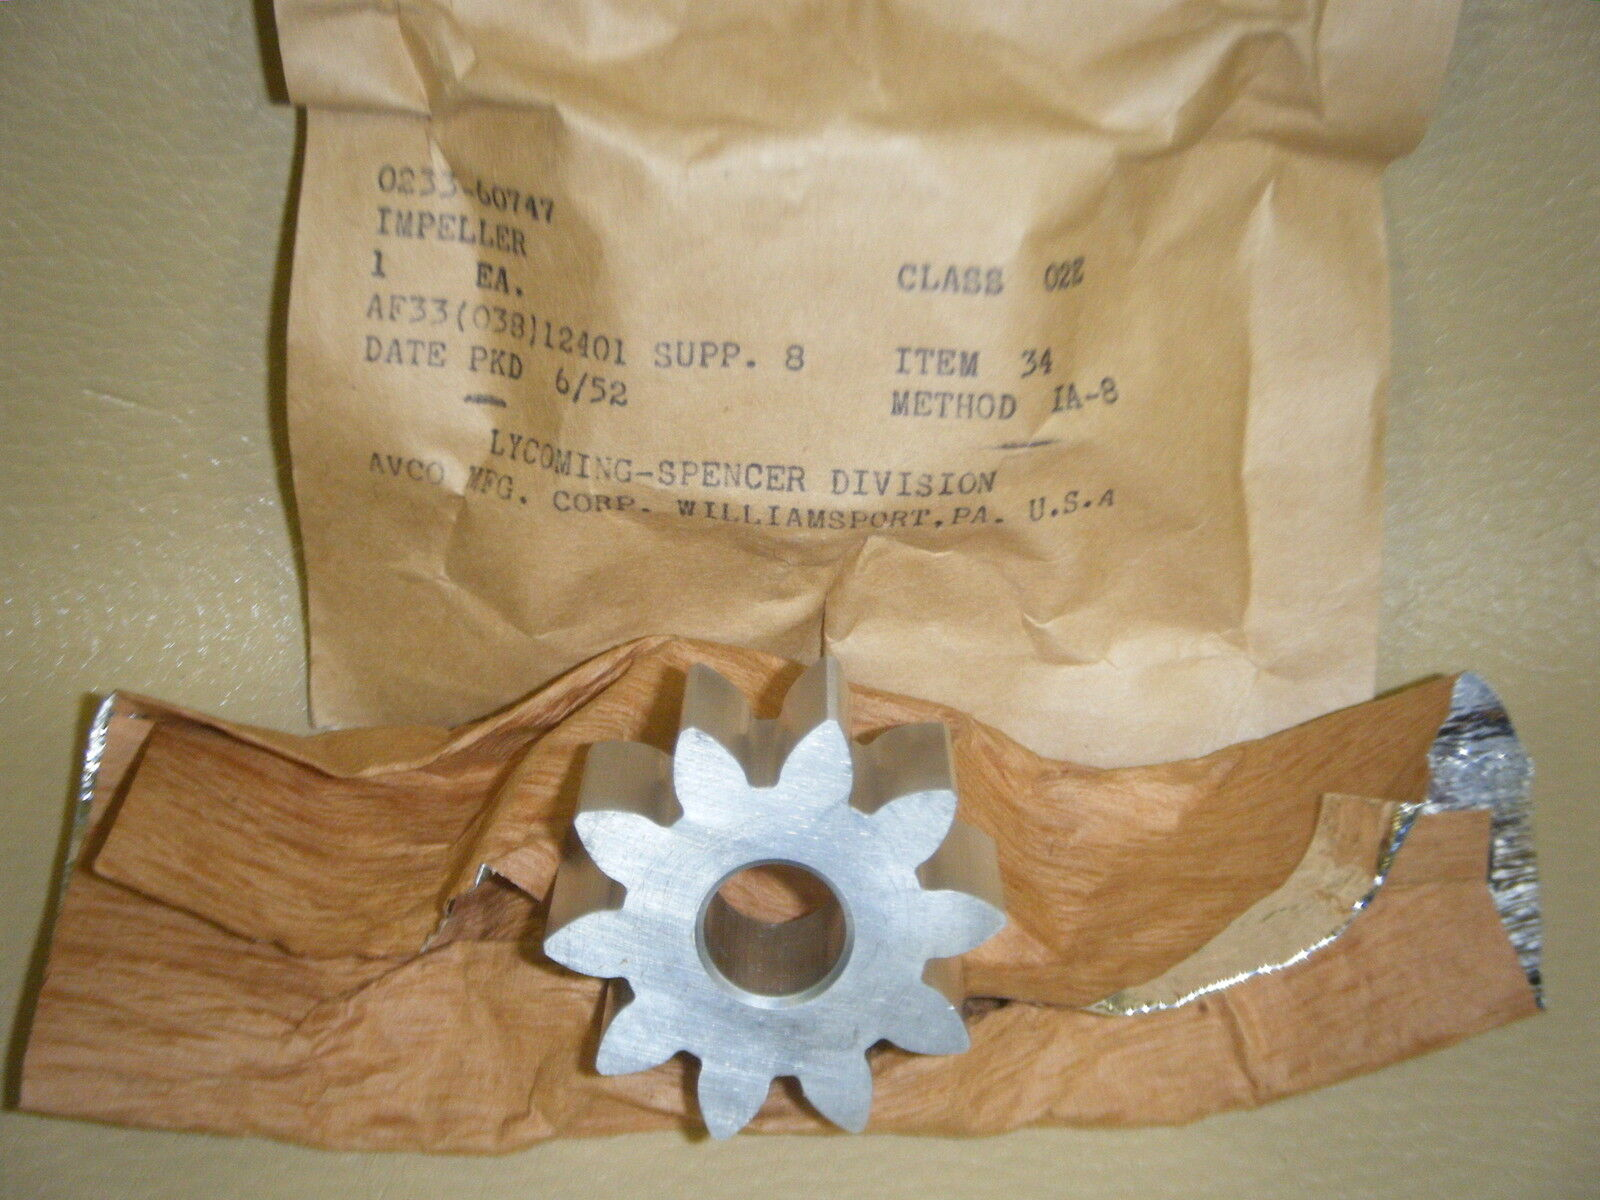 Lycoming Oil Impeller Gear, All Engines Pn 60747 - Price - Free Ship Nip